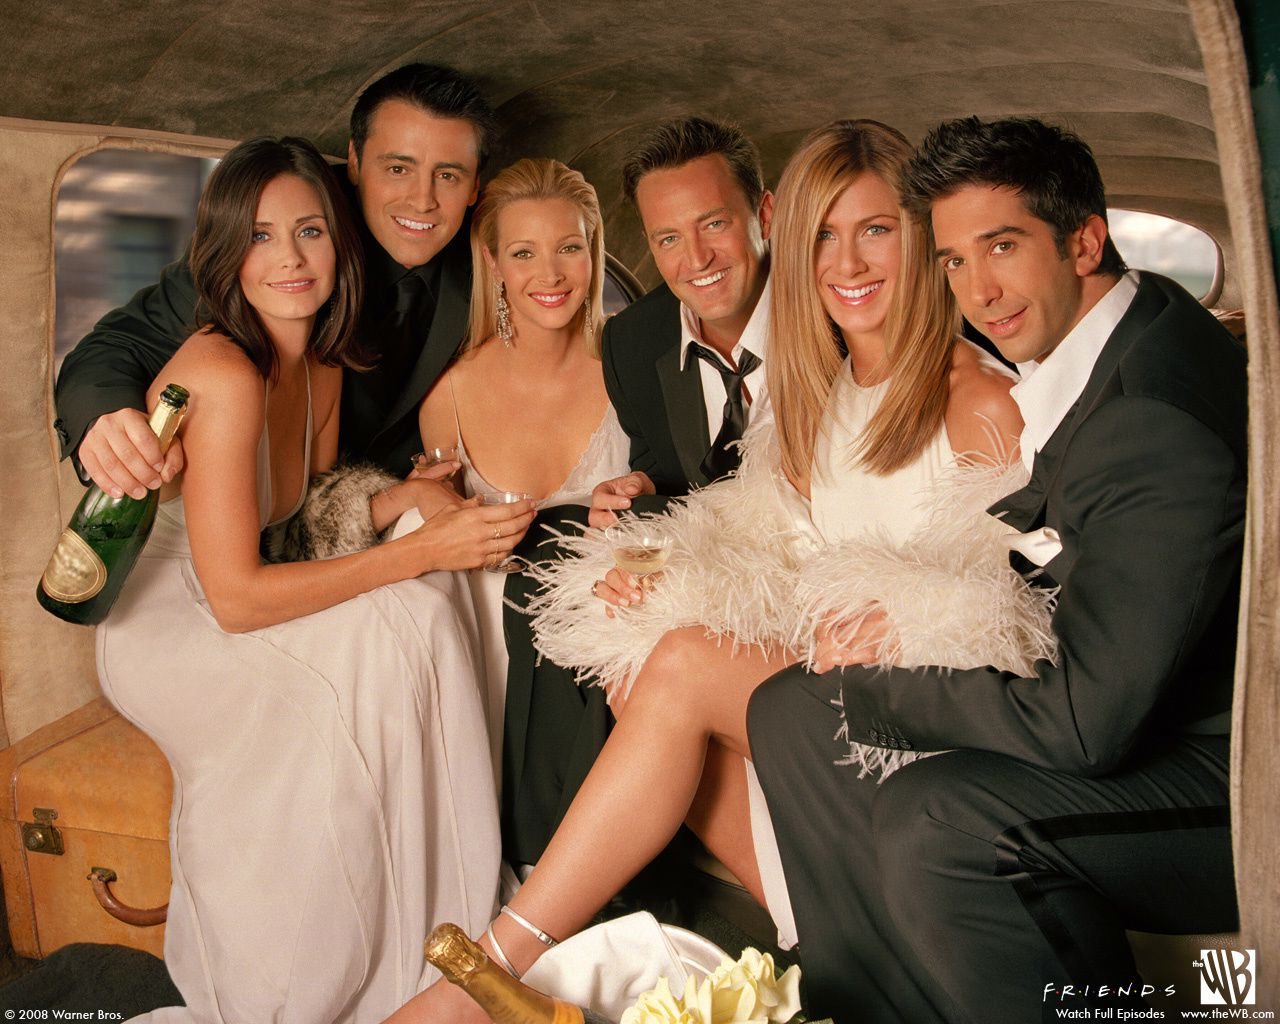 friends-series-tv-Warner-Bros.jpg